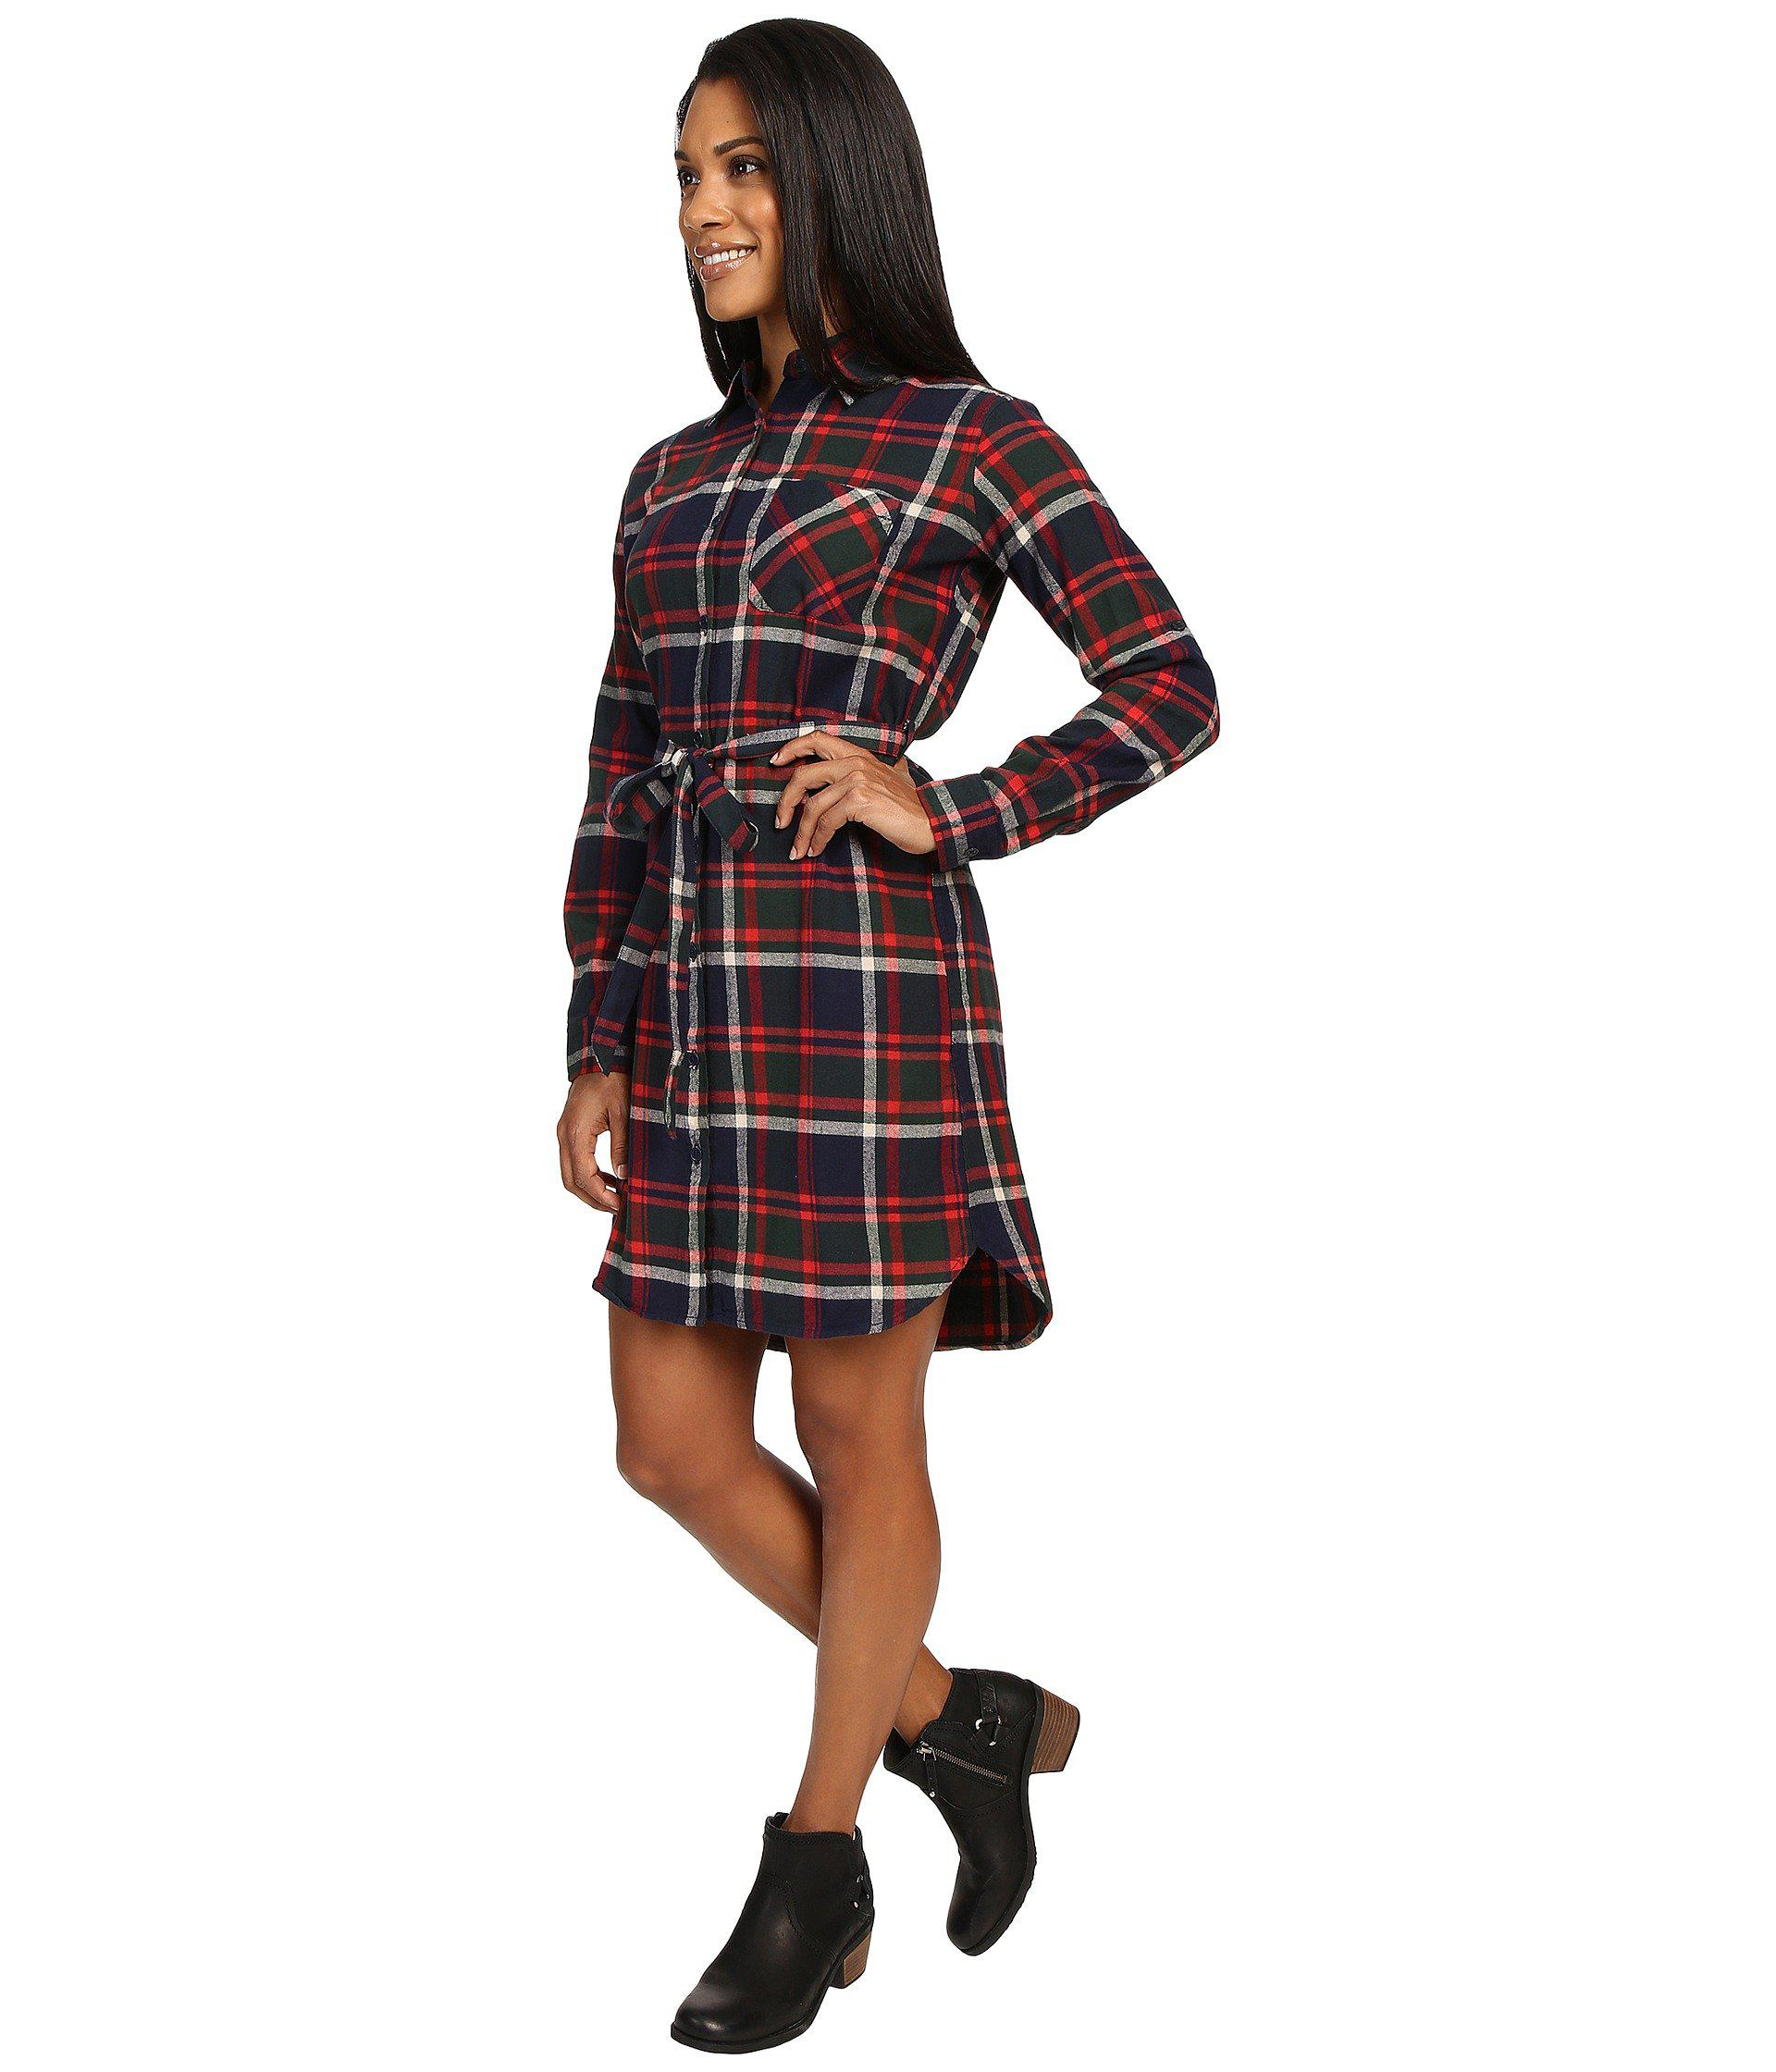 a026731968 Lyst - United By Blue Murray Plaid Dress in Red